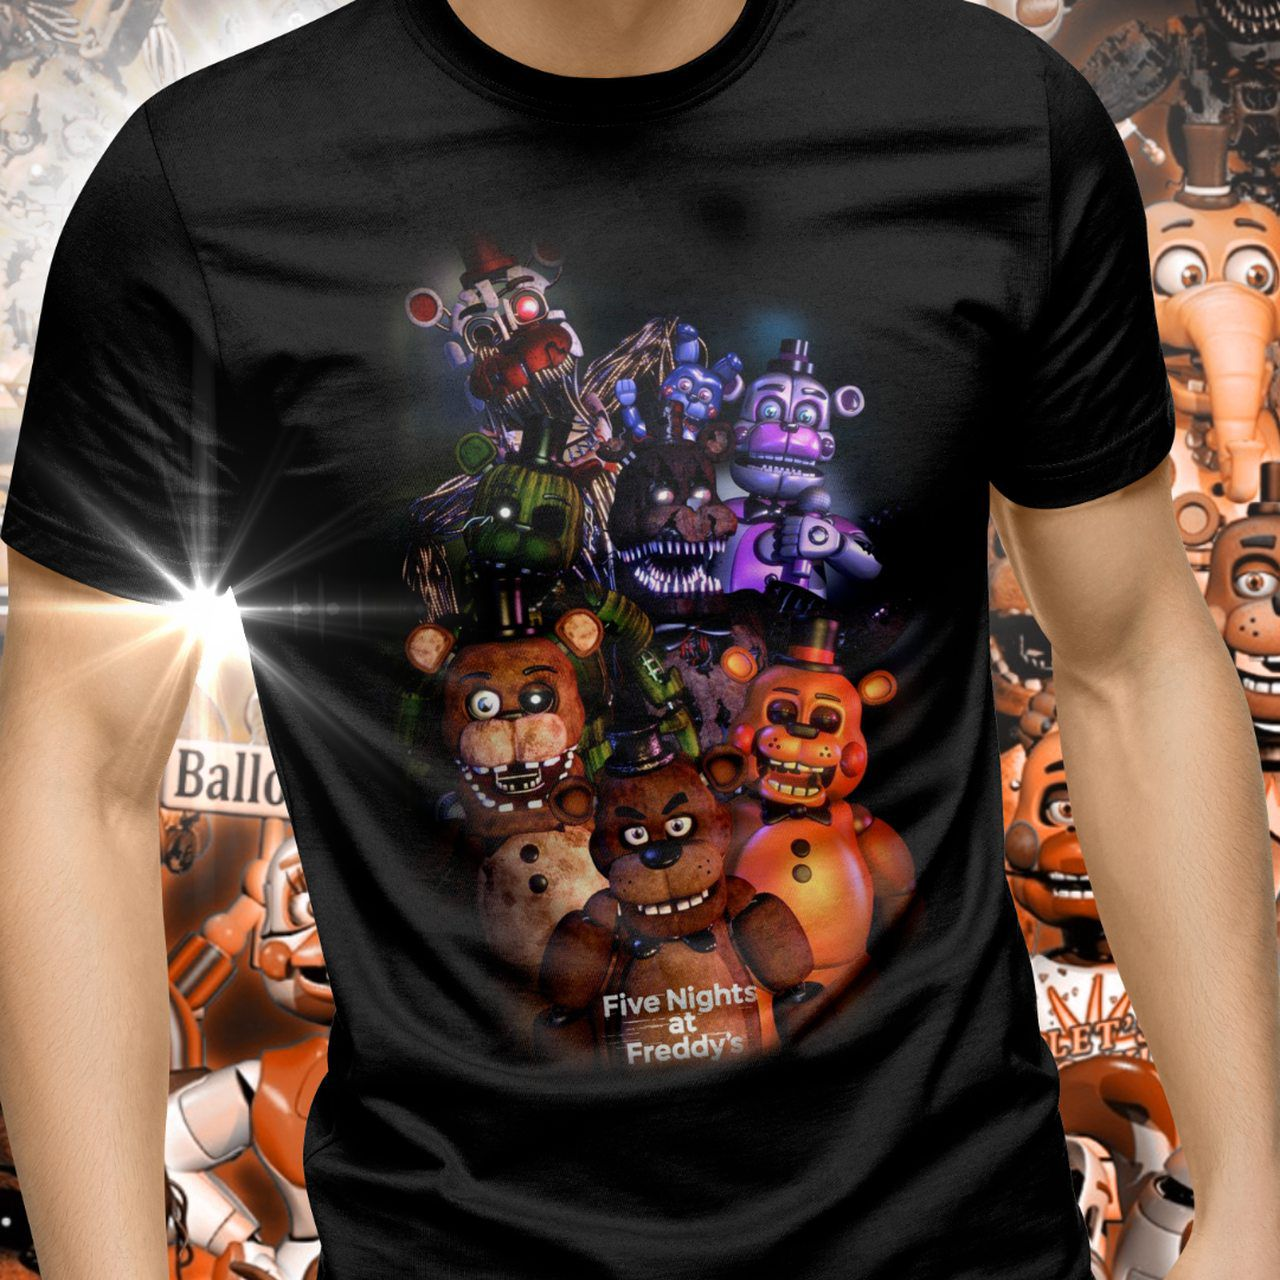 Camiseta Unissex Five Nights at Freddy's (Modelo 3) - Exclusiva ToyShow